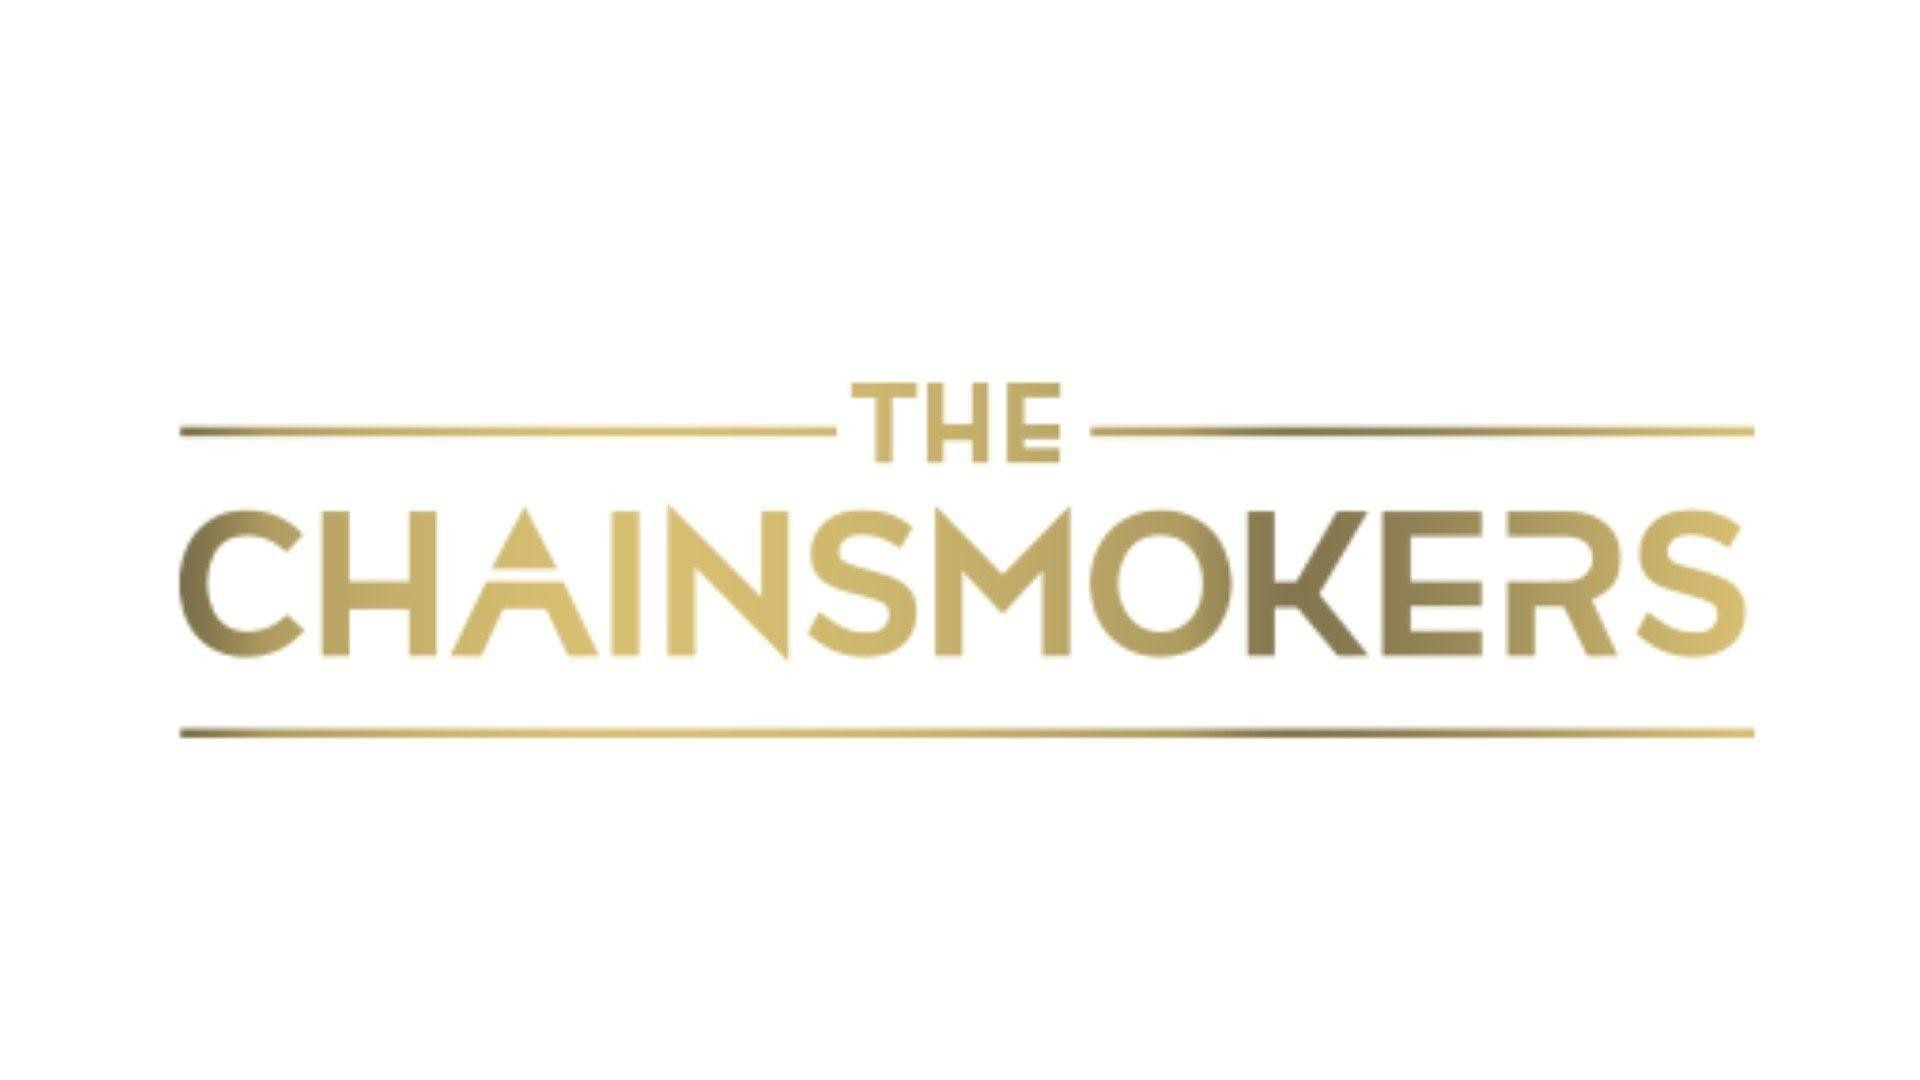 The Chainsmokers Wallpapers 80 Images